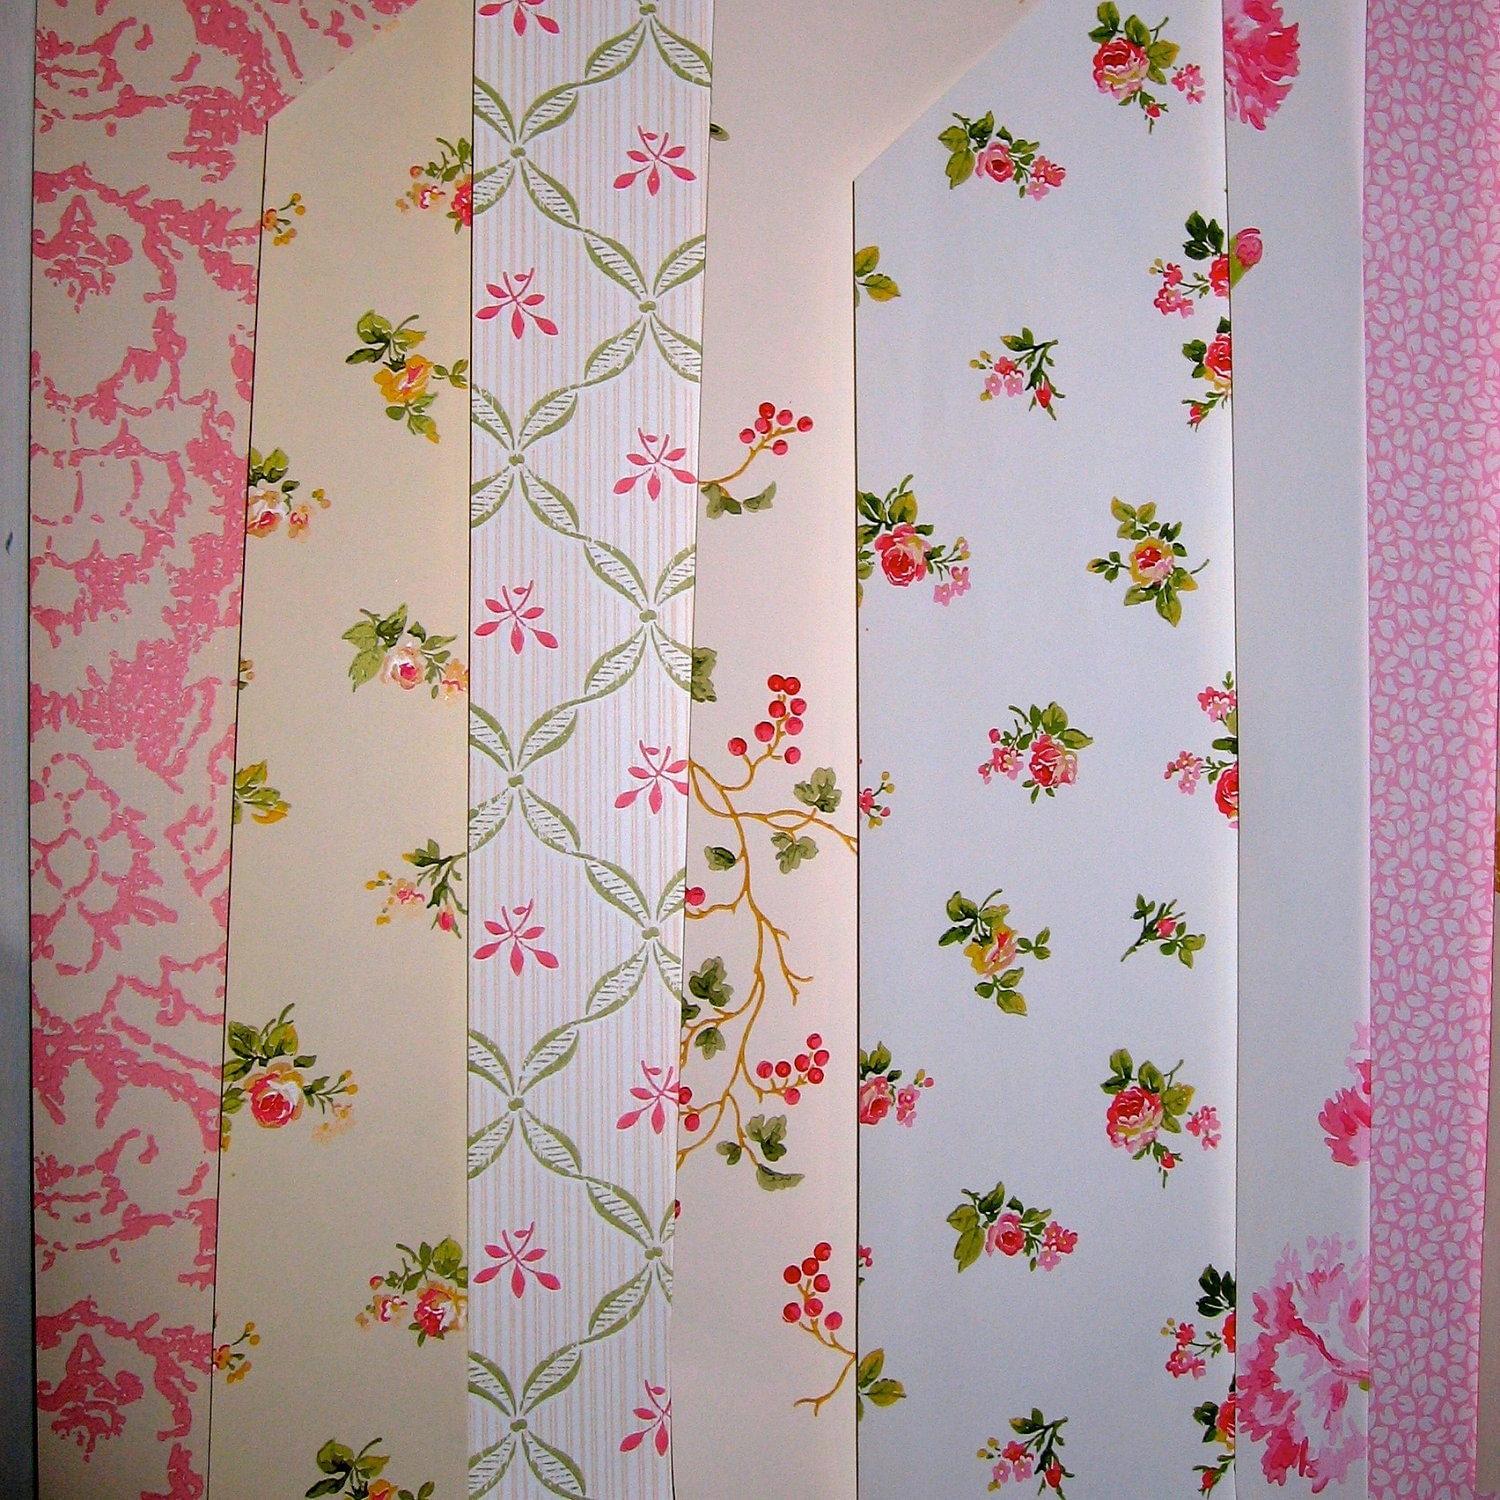 Laura Ashley Wallpaper Craft Projects 11 Sample Sheets Pink